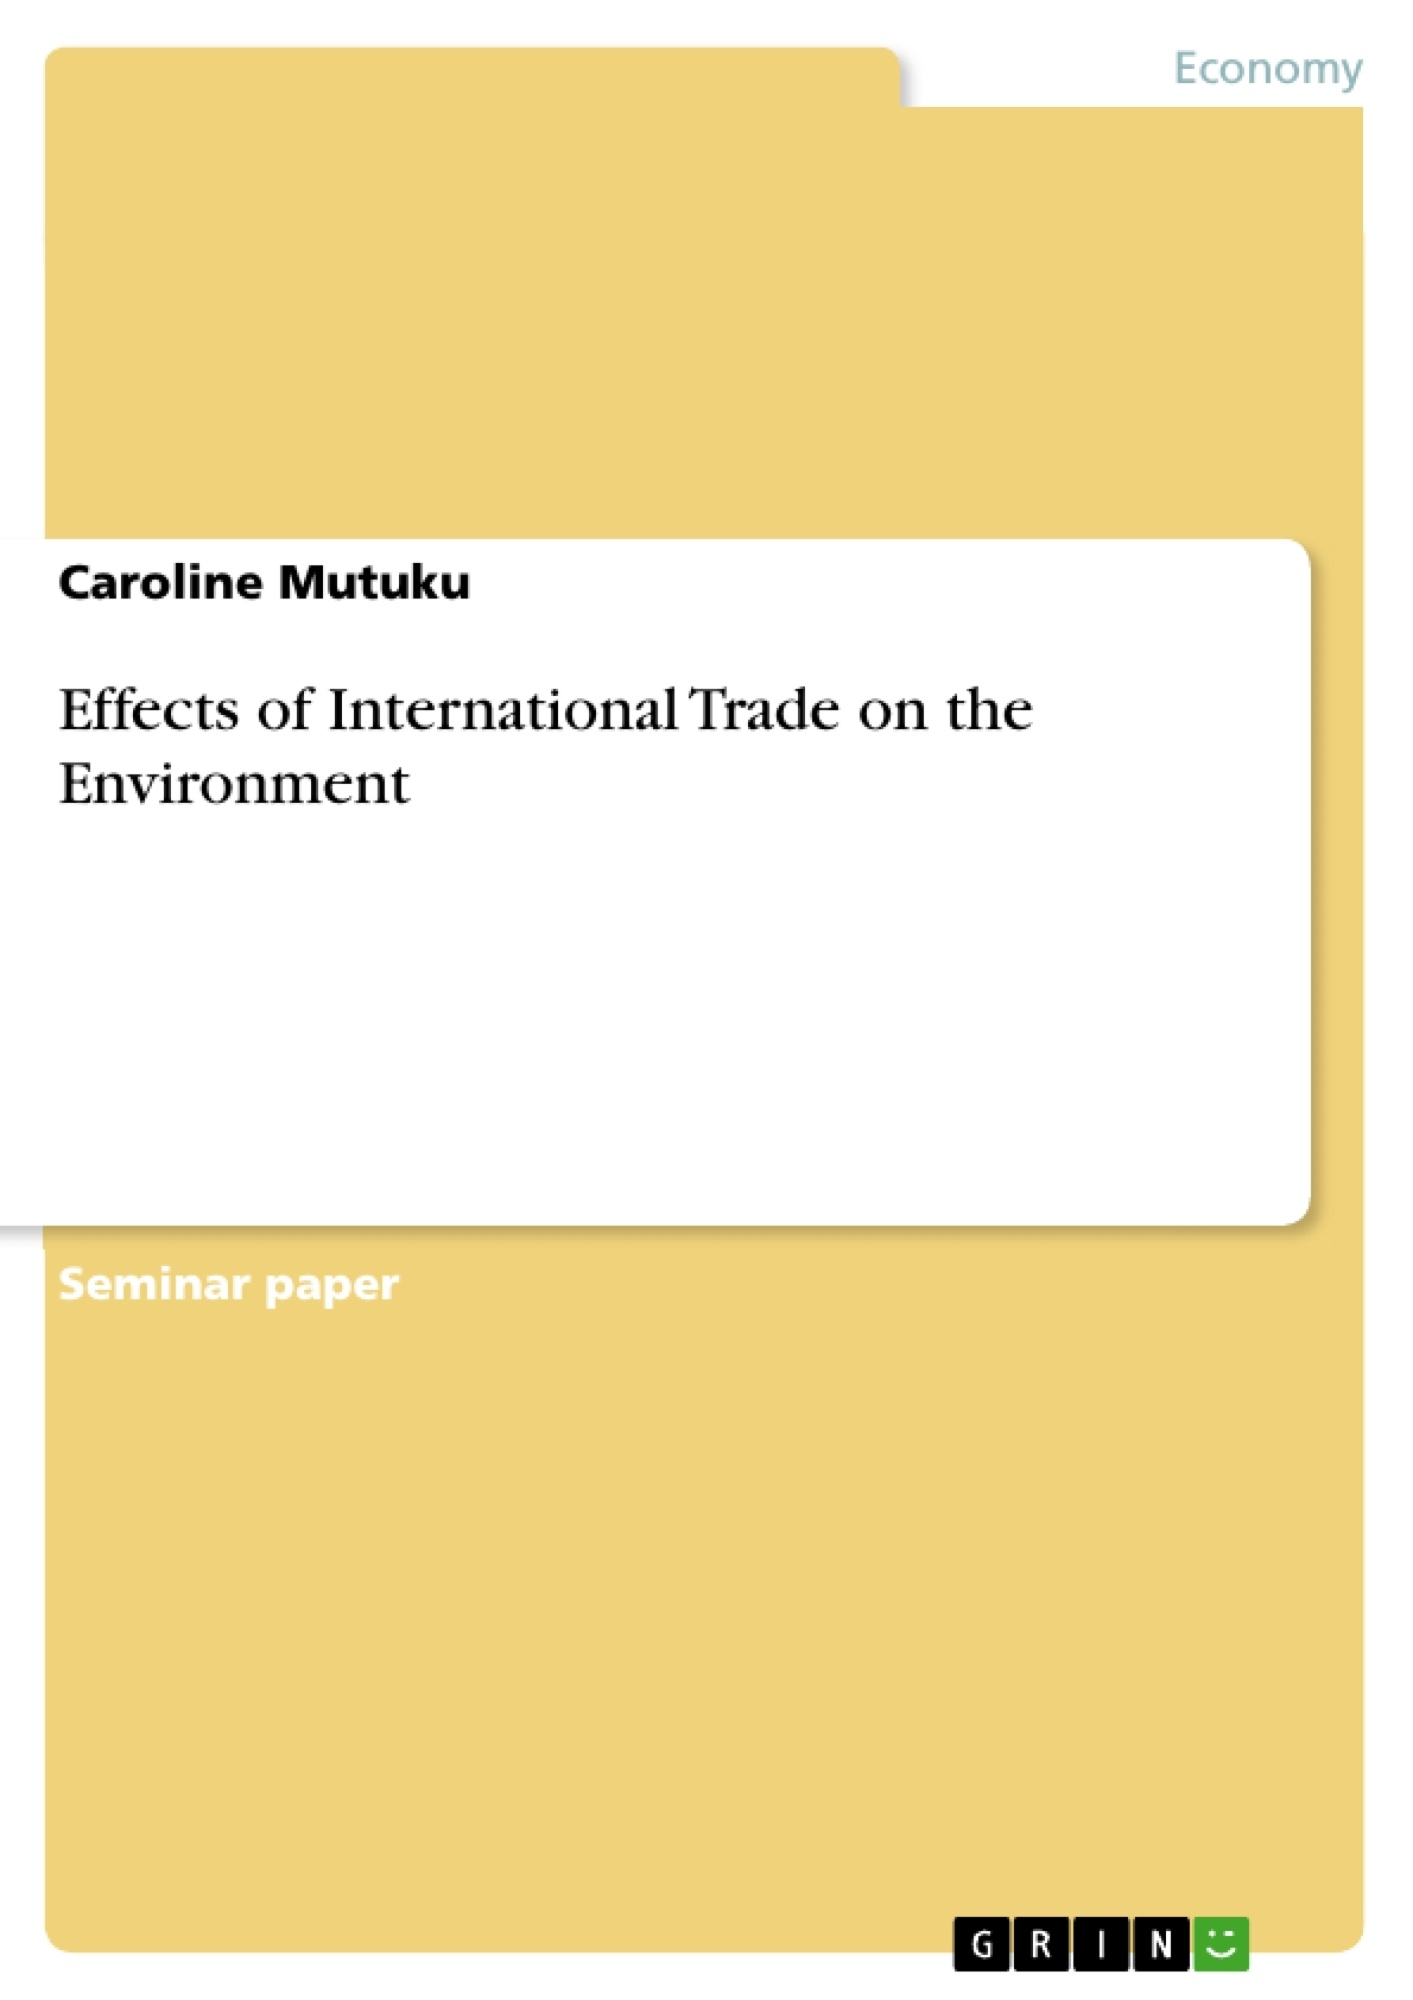 Title: Effects of International Trade on the Environment